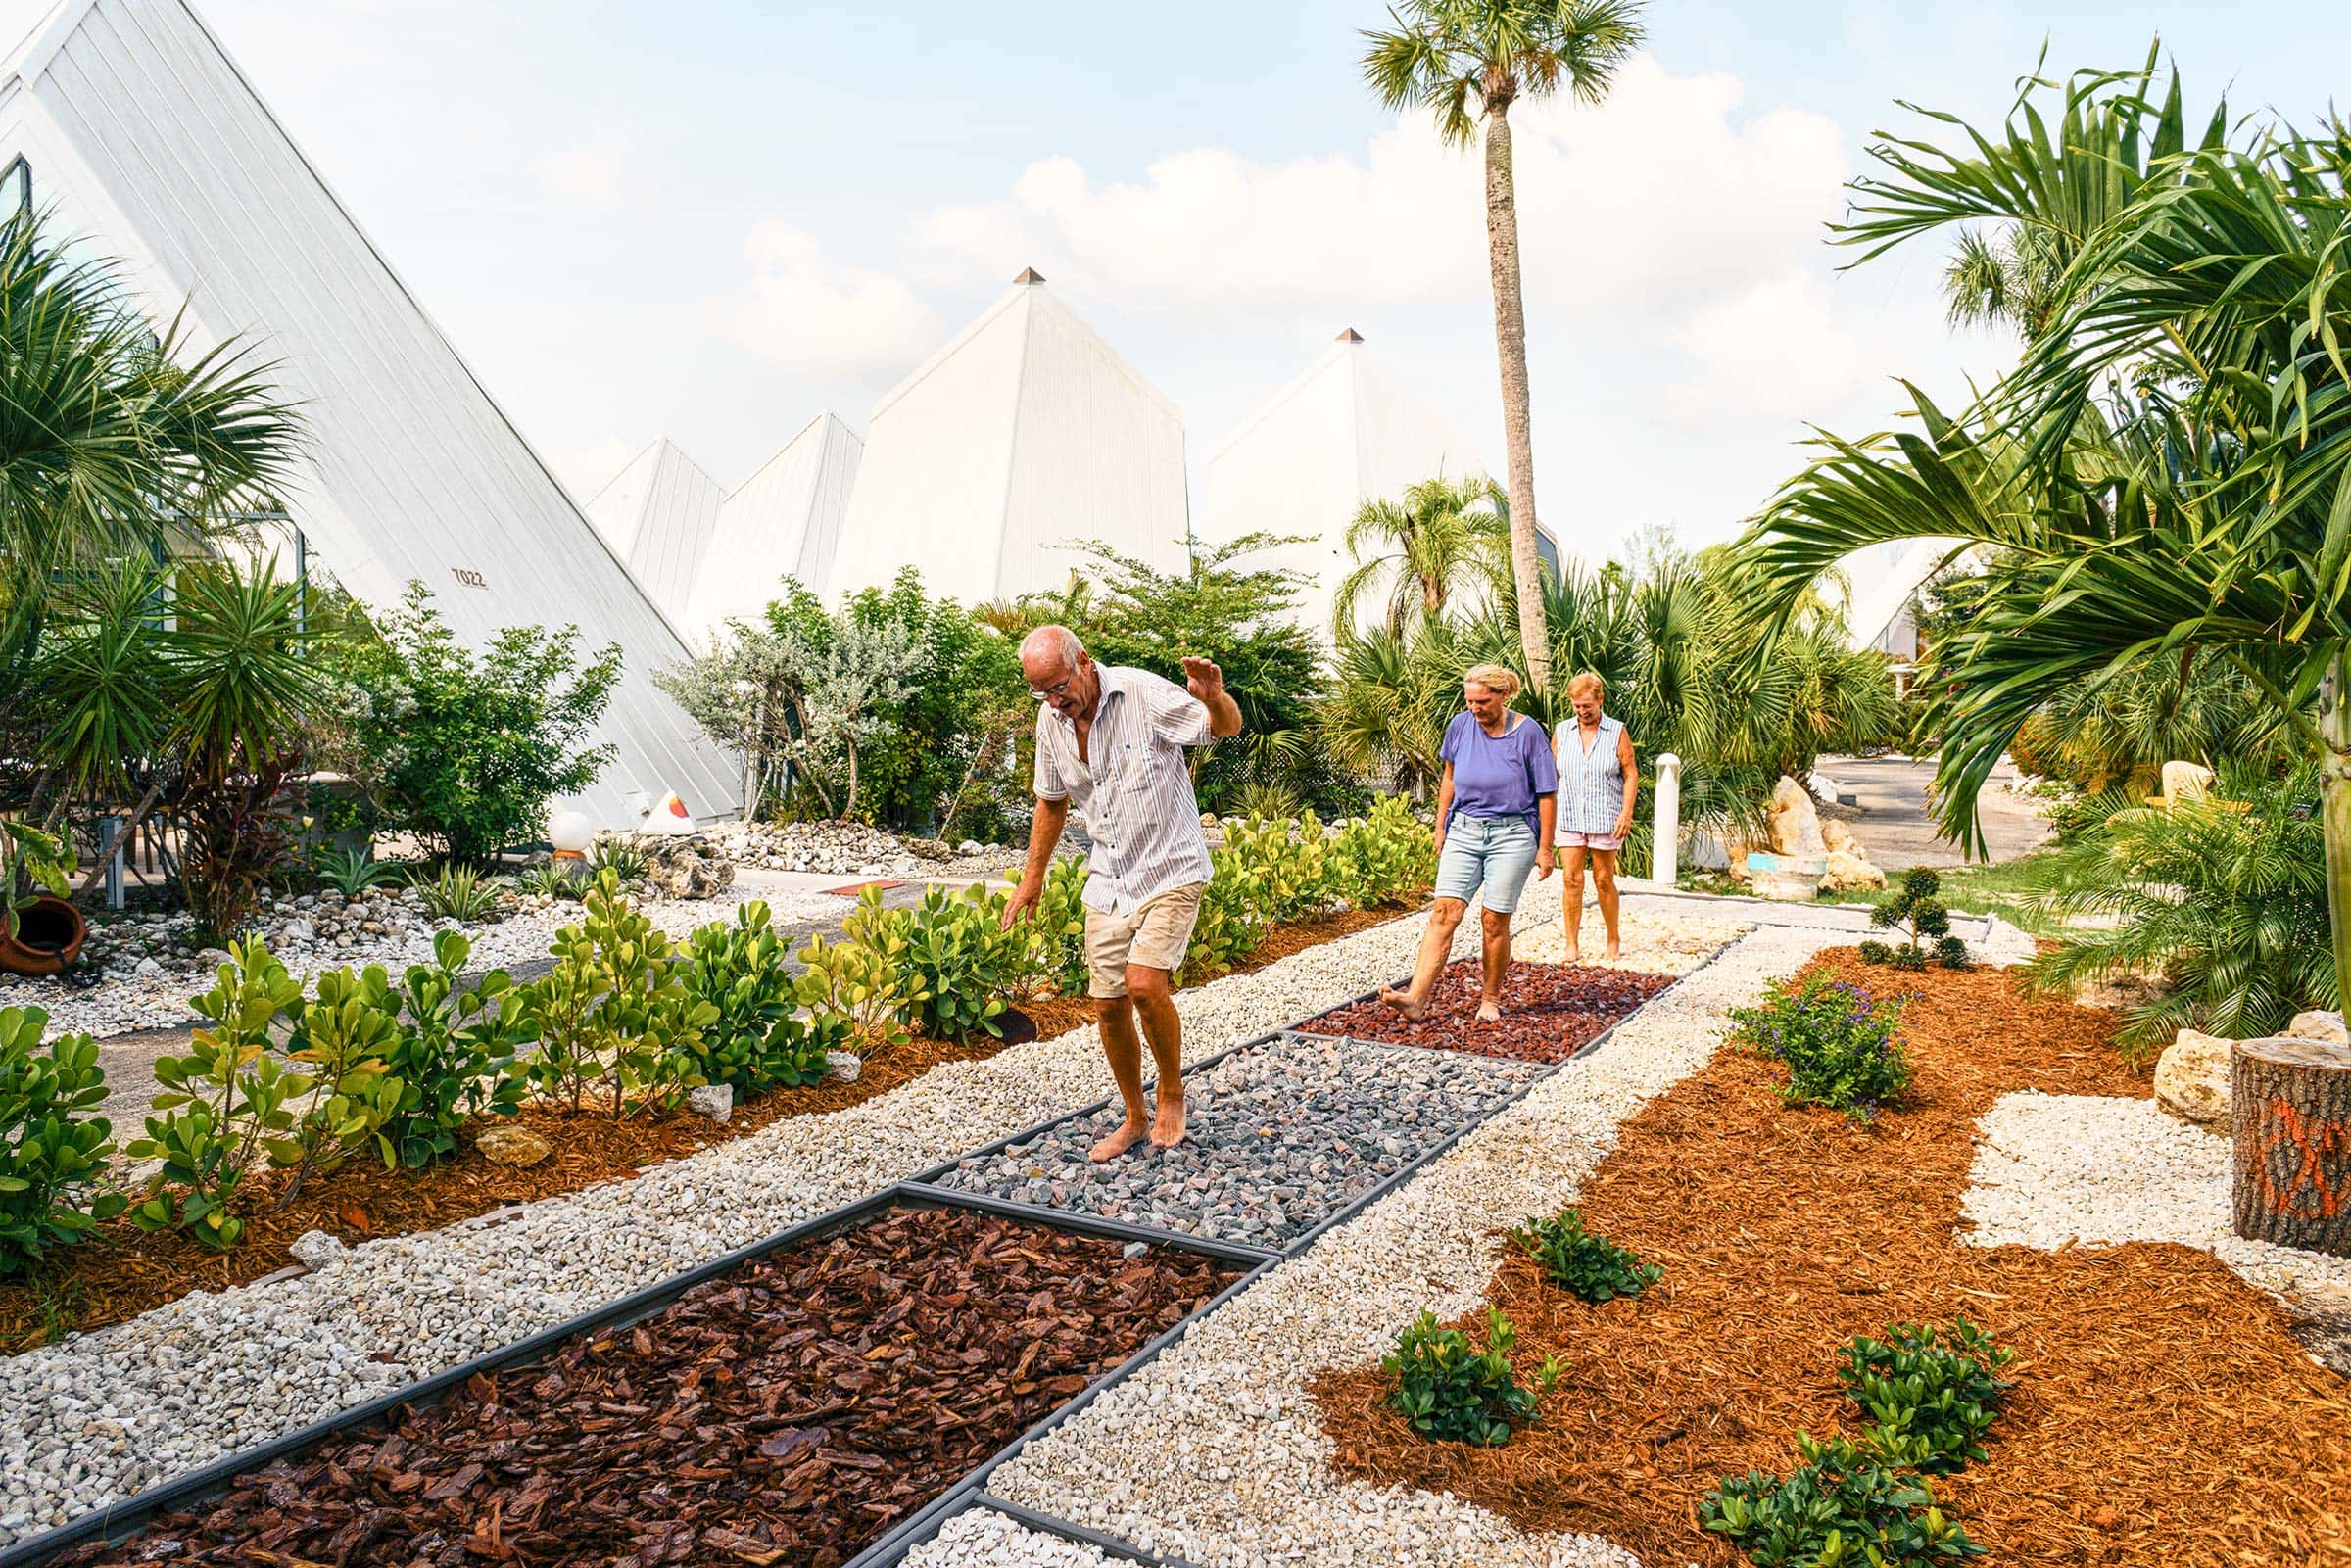 Three people walking along Pyramids in Florida's barefoot path which is constructed from different stones & wood textures